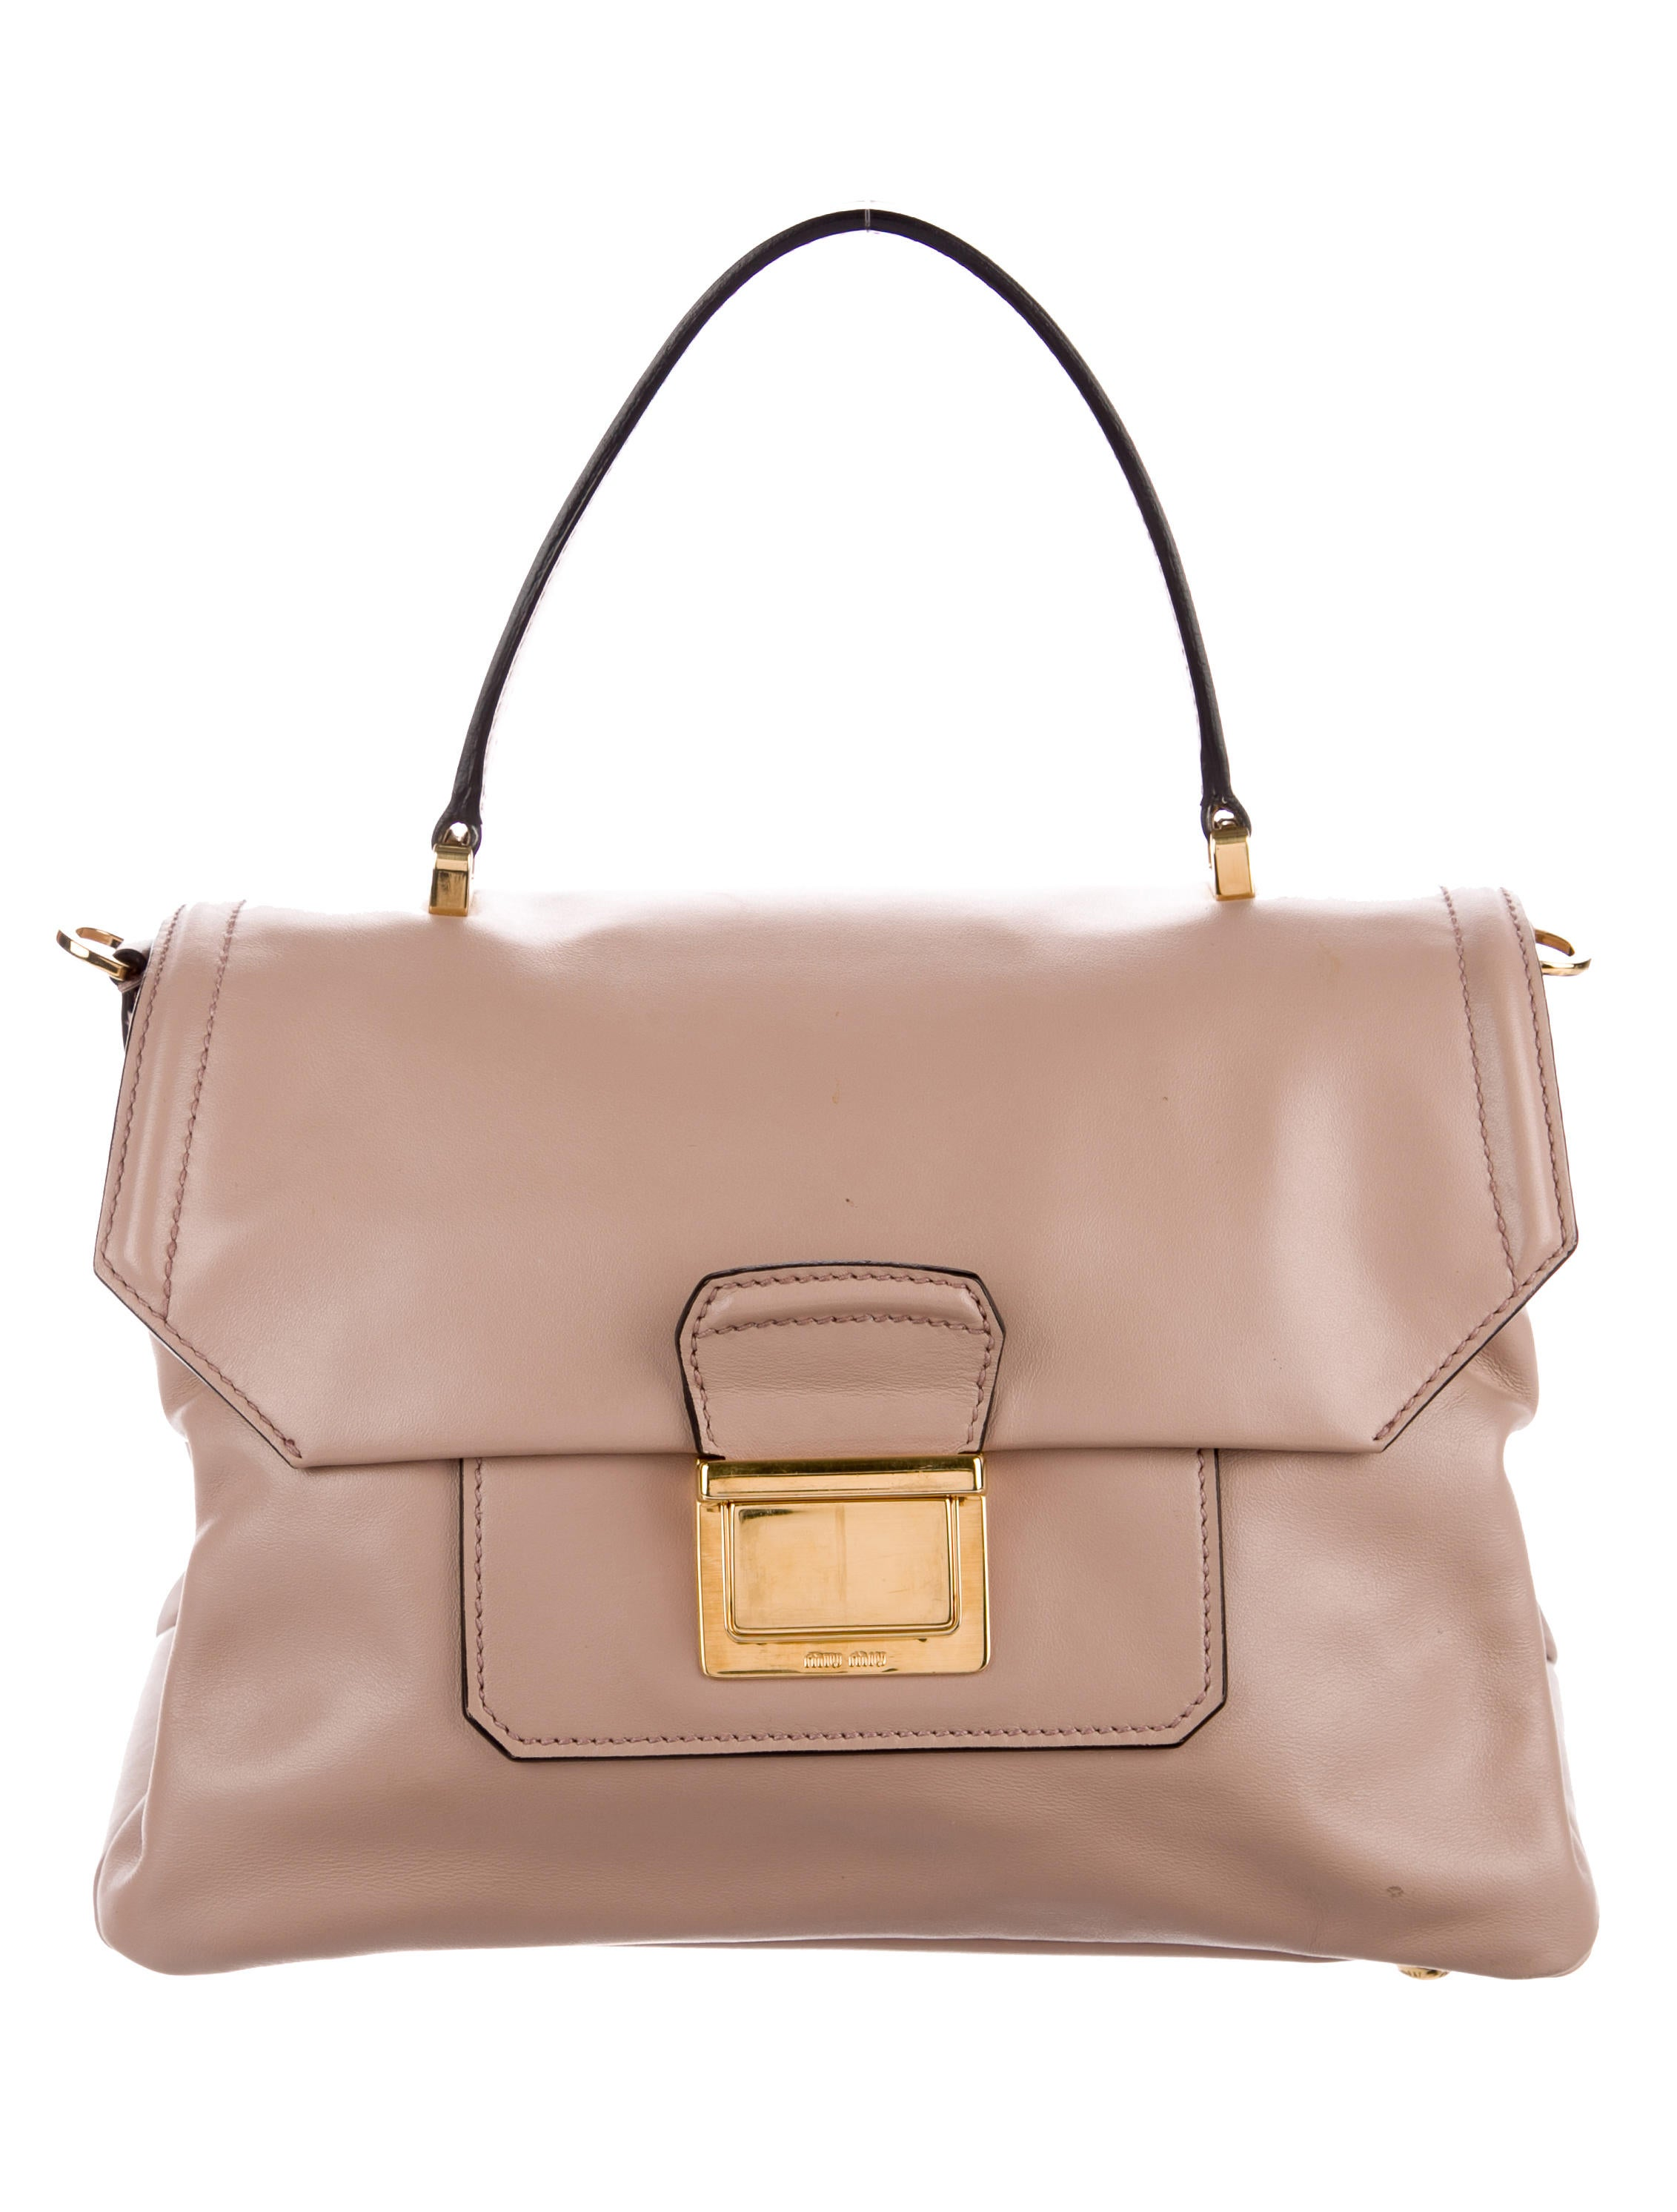 Women · Handbags  Miu Miu Smooth Leather Satchel. Smooth Leather Satchel 163a5077ba685